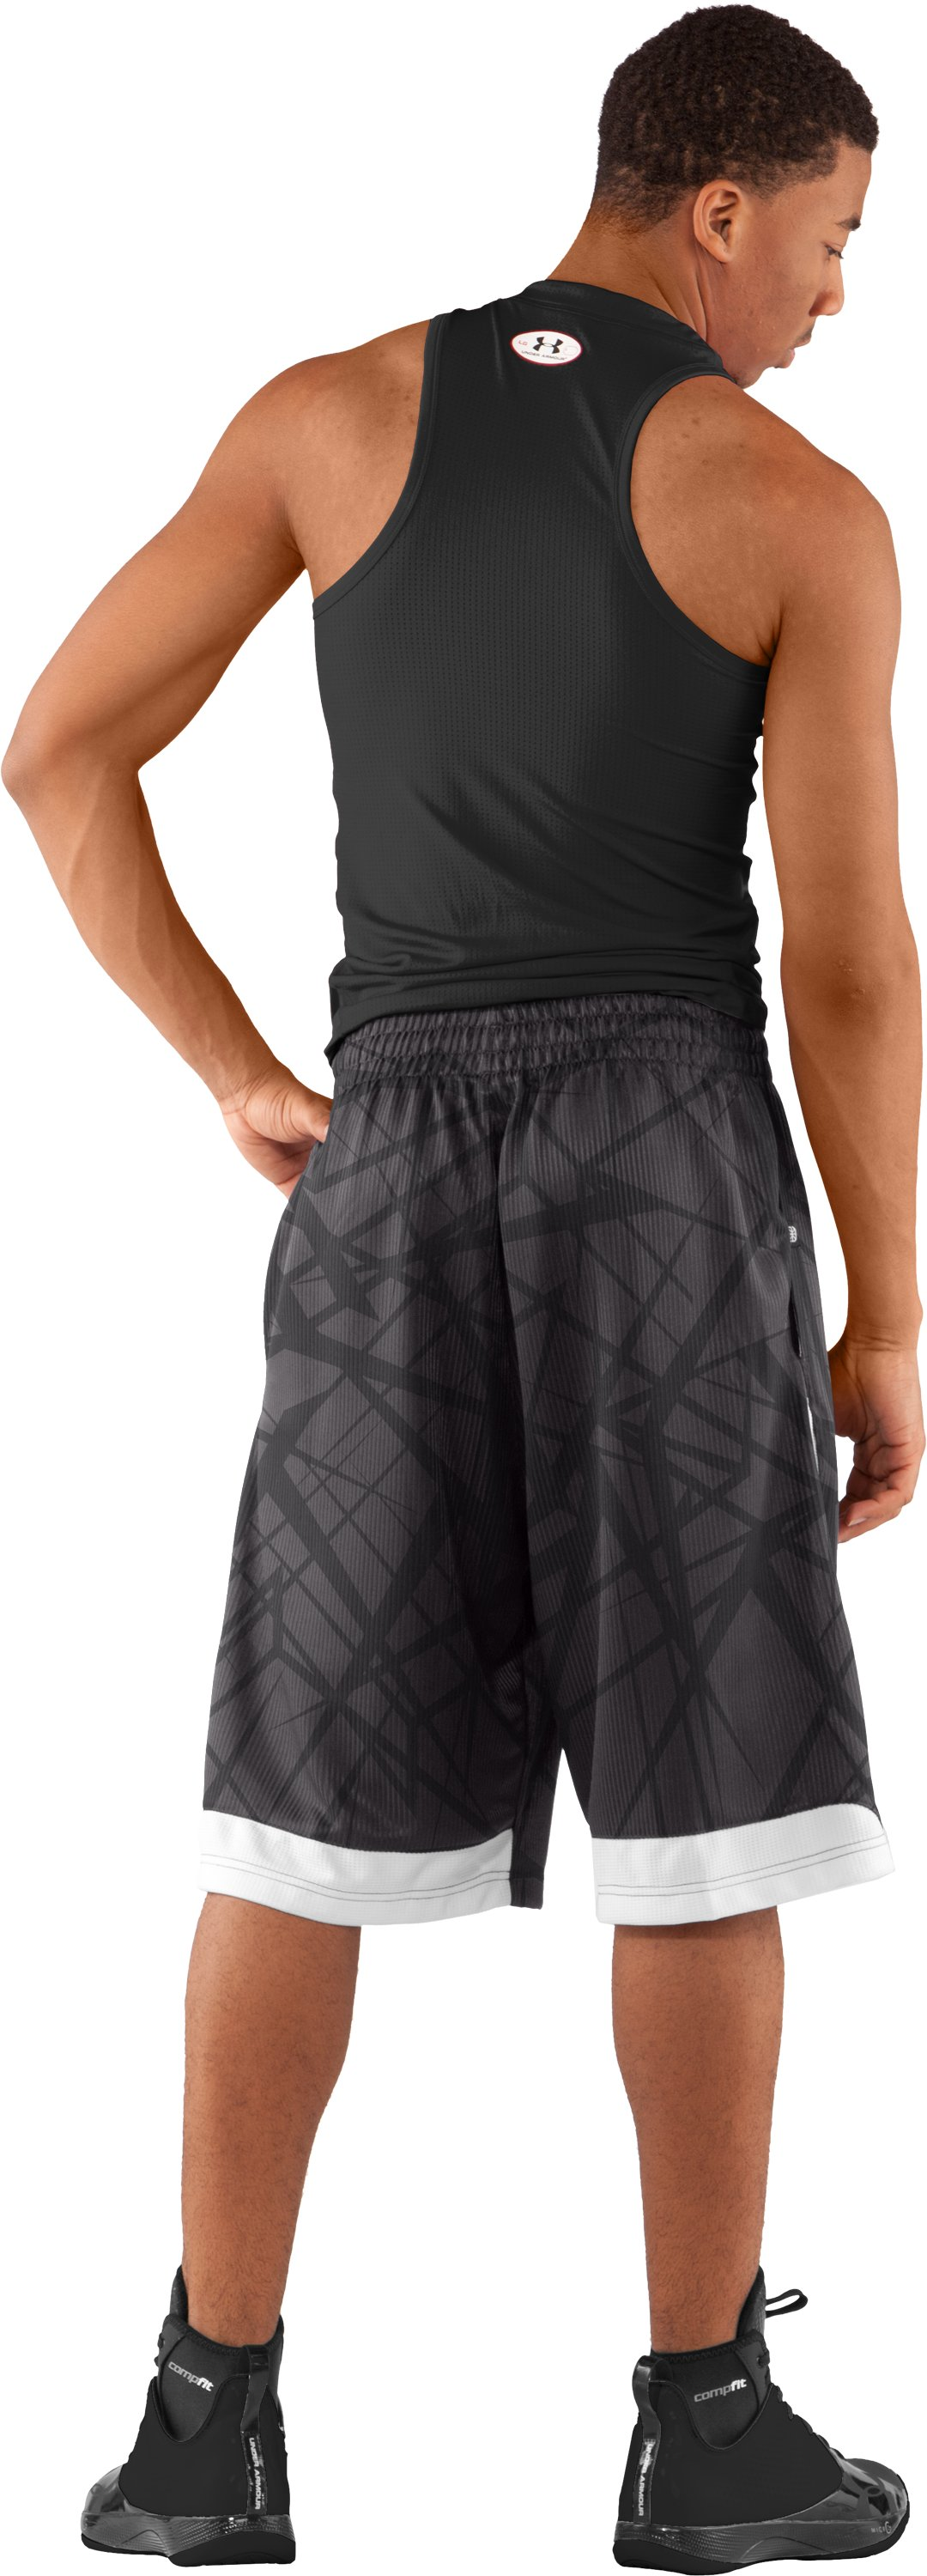 "Men's Printed UA Valkyrie 12"" Basketball Shorts, Charcoal, Back"